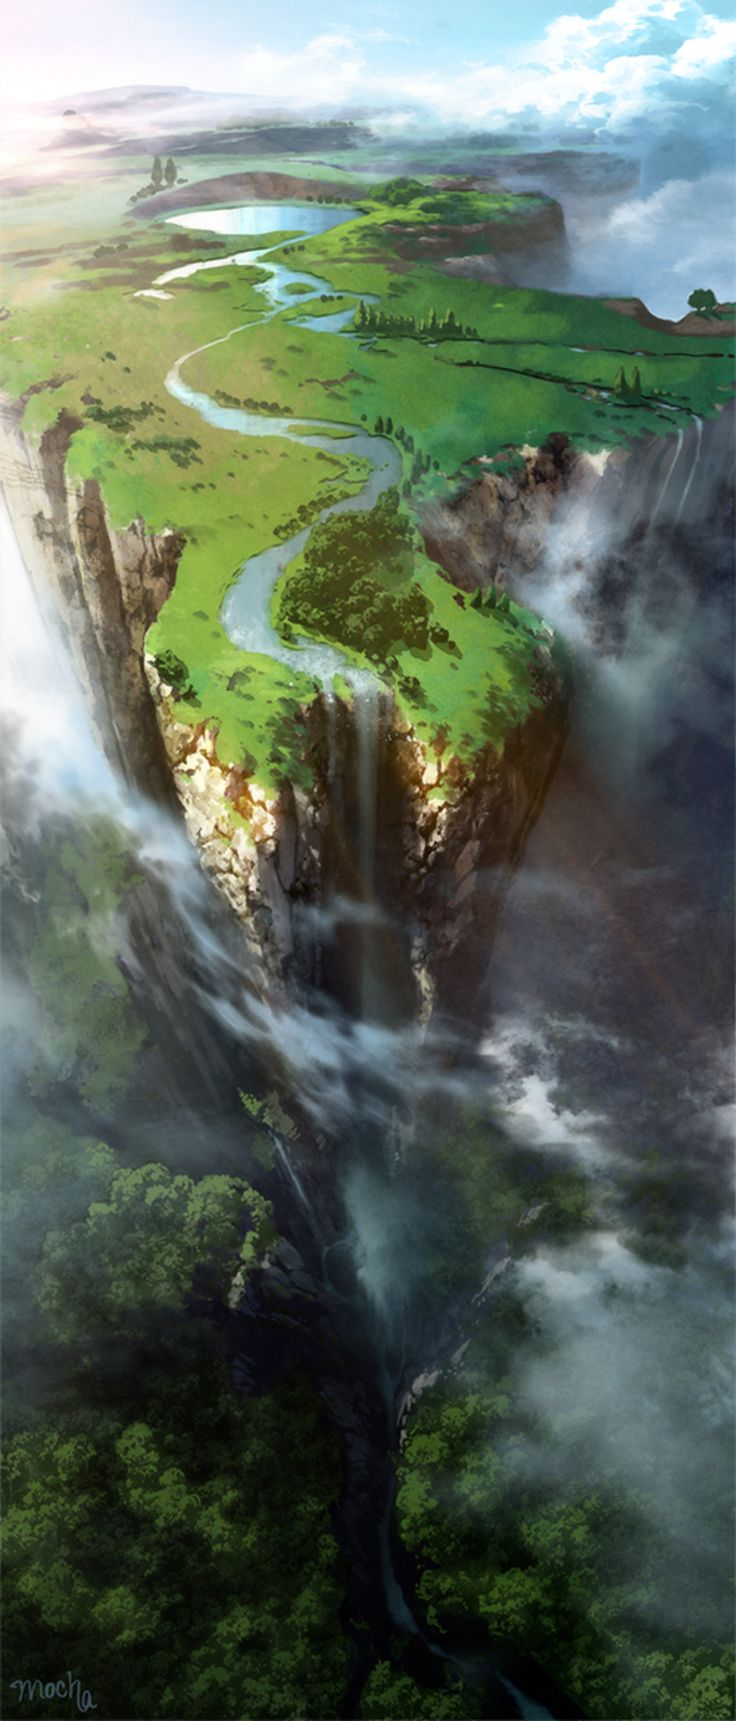 The Art Of Animation. Would be a perfect illustration for the giant waterfalls of Novia in SHELBY AND SHAUNA KITT AND THE DIMENSIONAL HOLES.